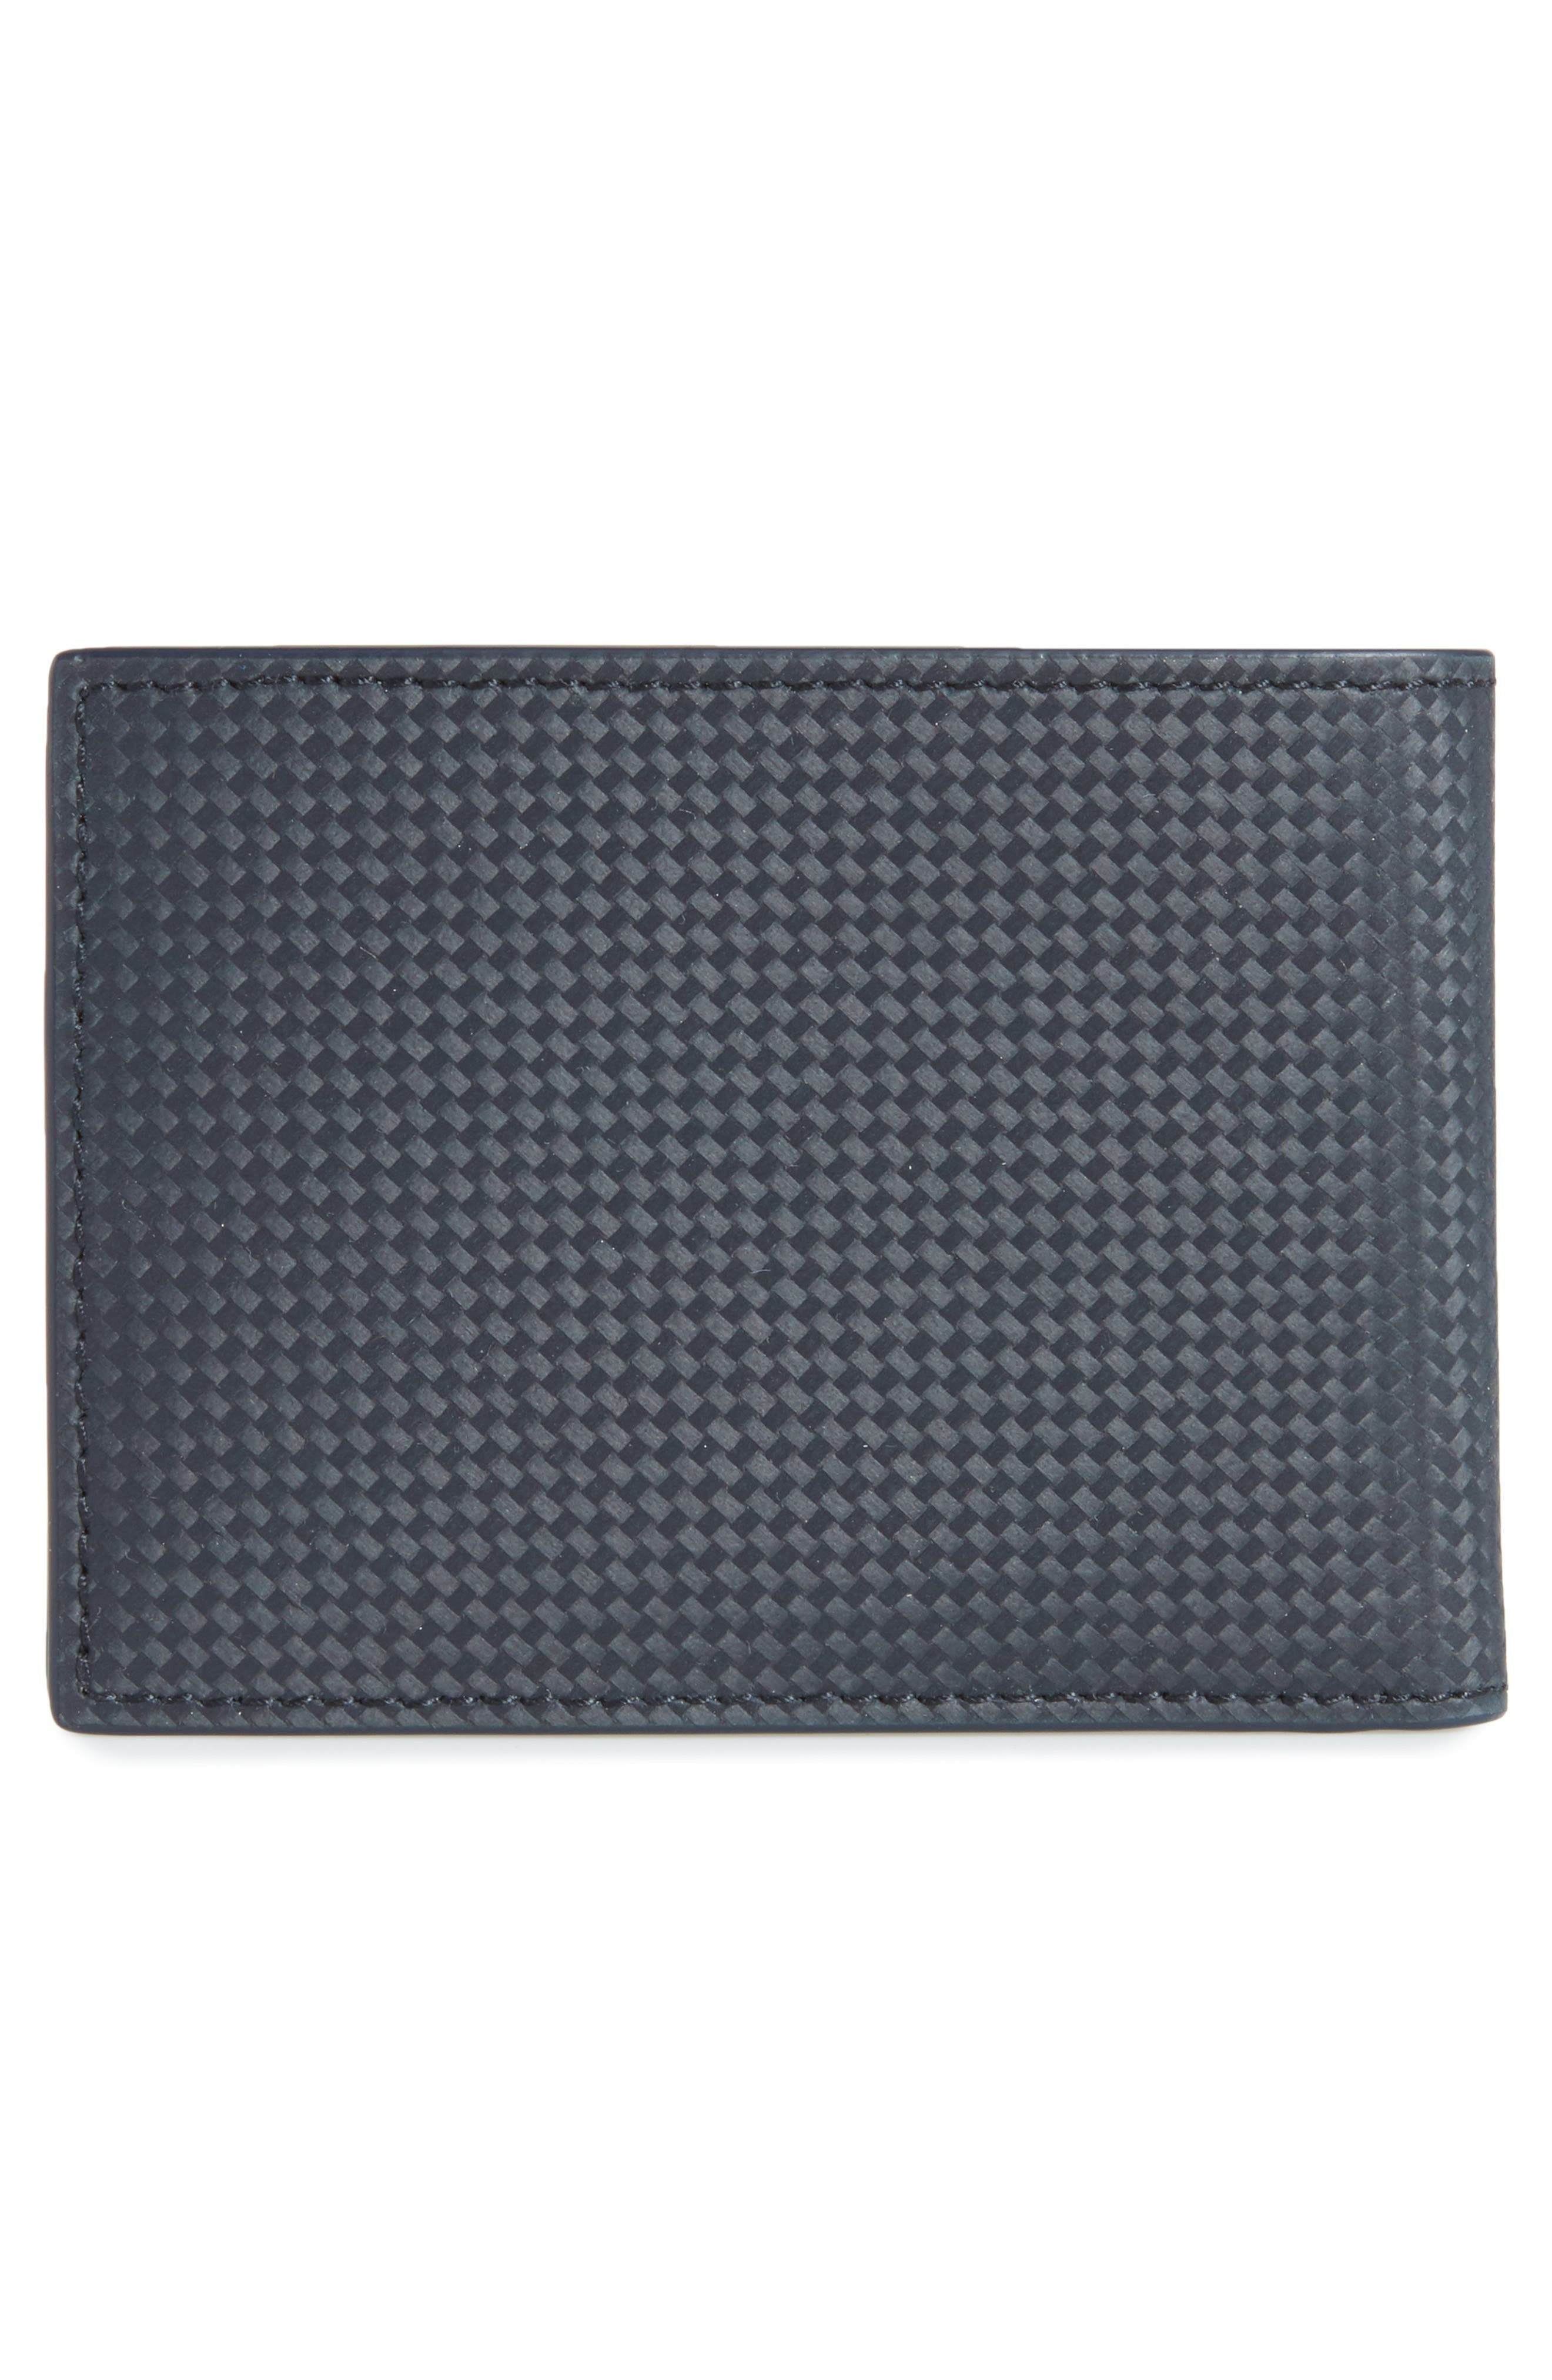 Extreme Bifold Leather Wallet,                             Alternate thumbnail 3, color,                             BLUE